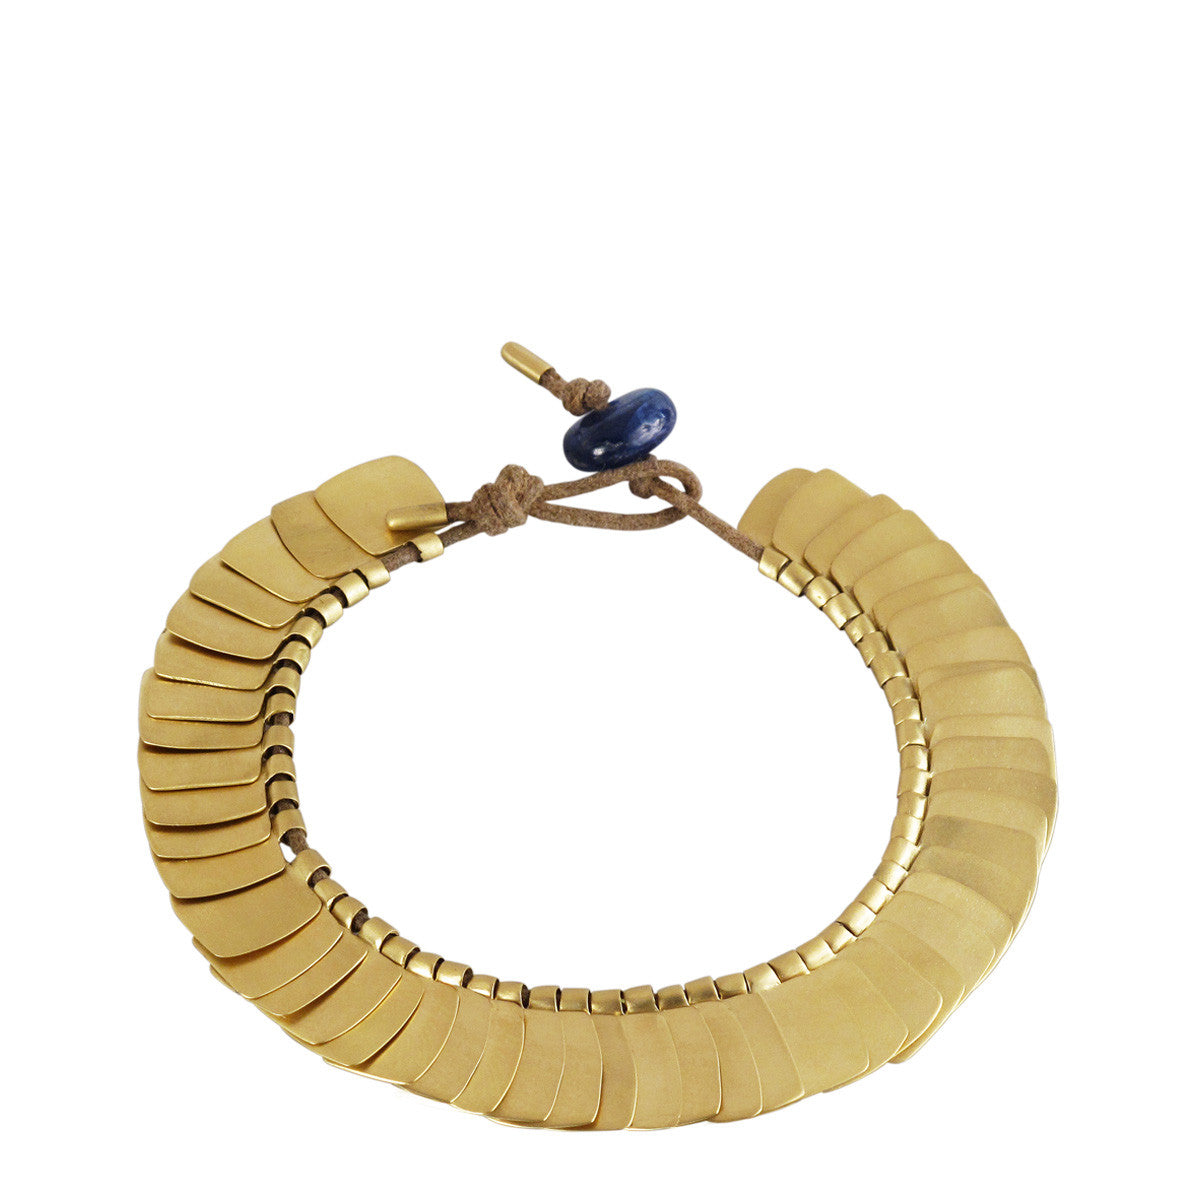 18K Gold Full Flattened Square Bracelet with Sapphire Bead